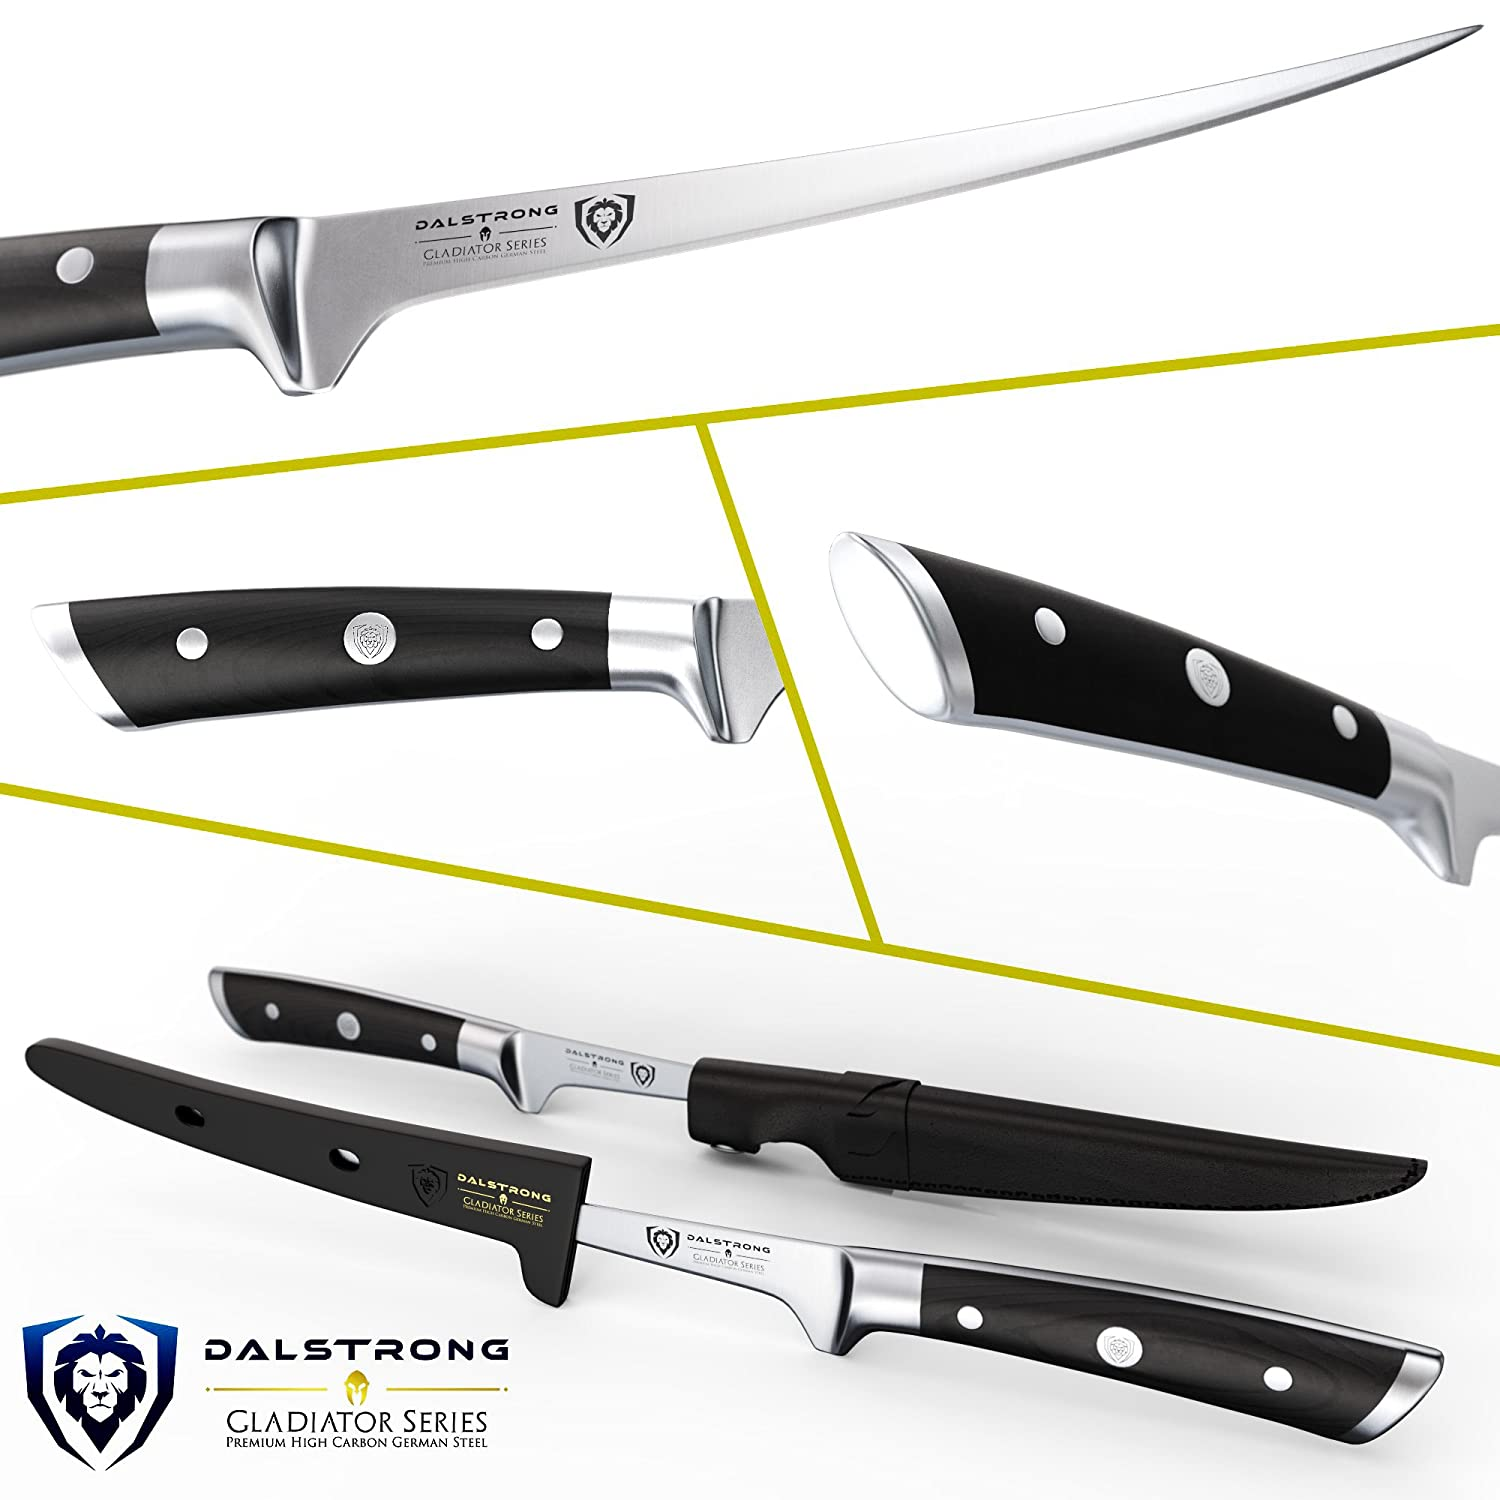 Amazon.com: Dalstrong Gladiator Series cuchillo para filete ...